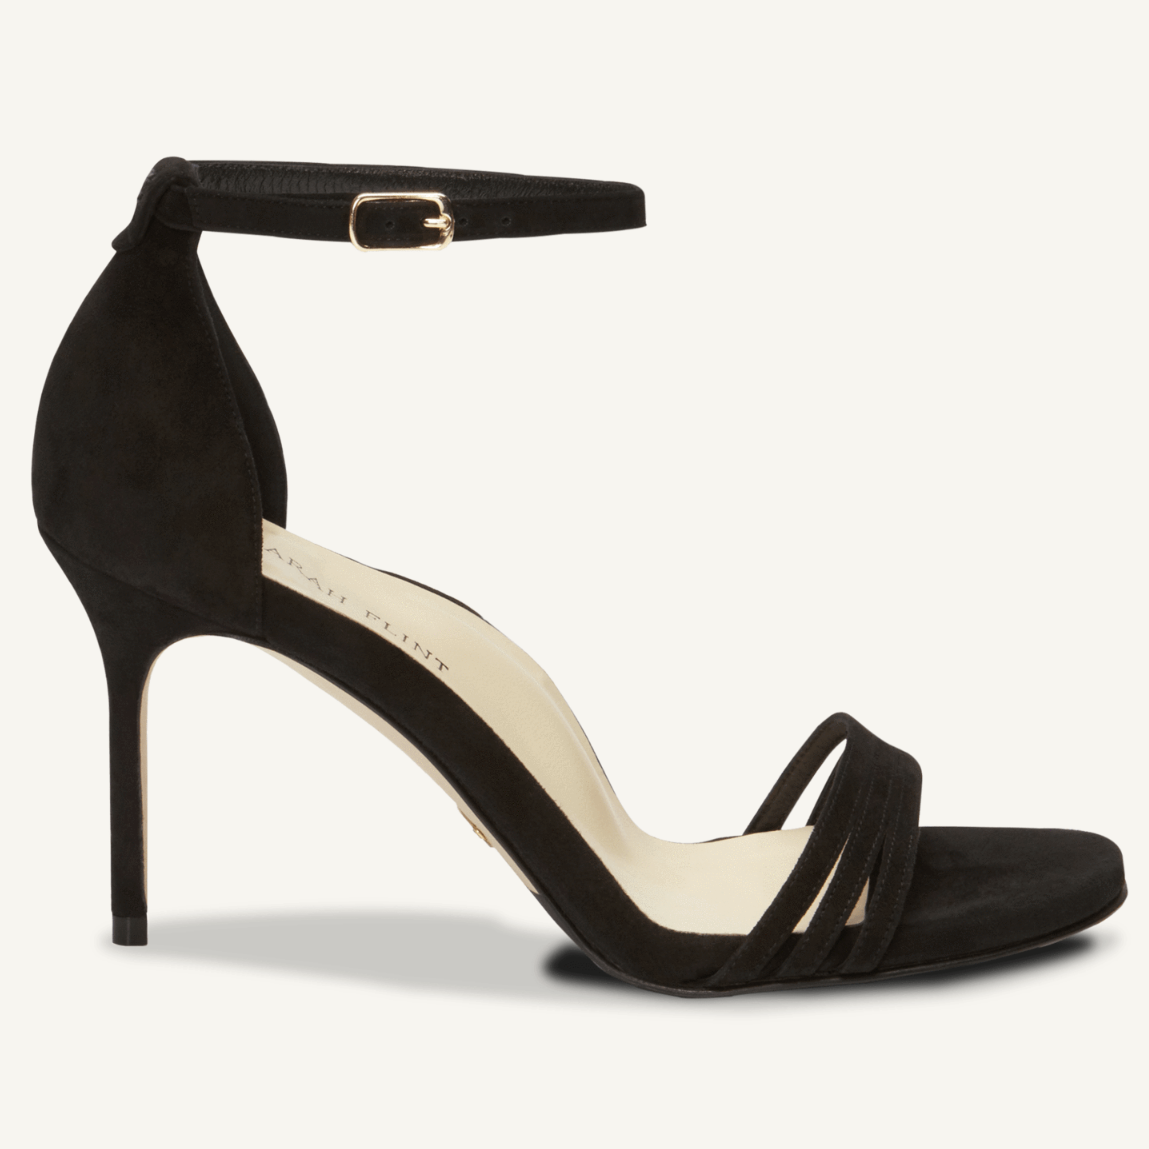 Sarah Flint Perfect Sandal x Stacie Flinner 2